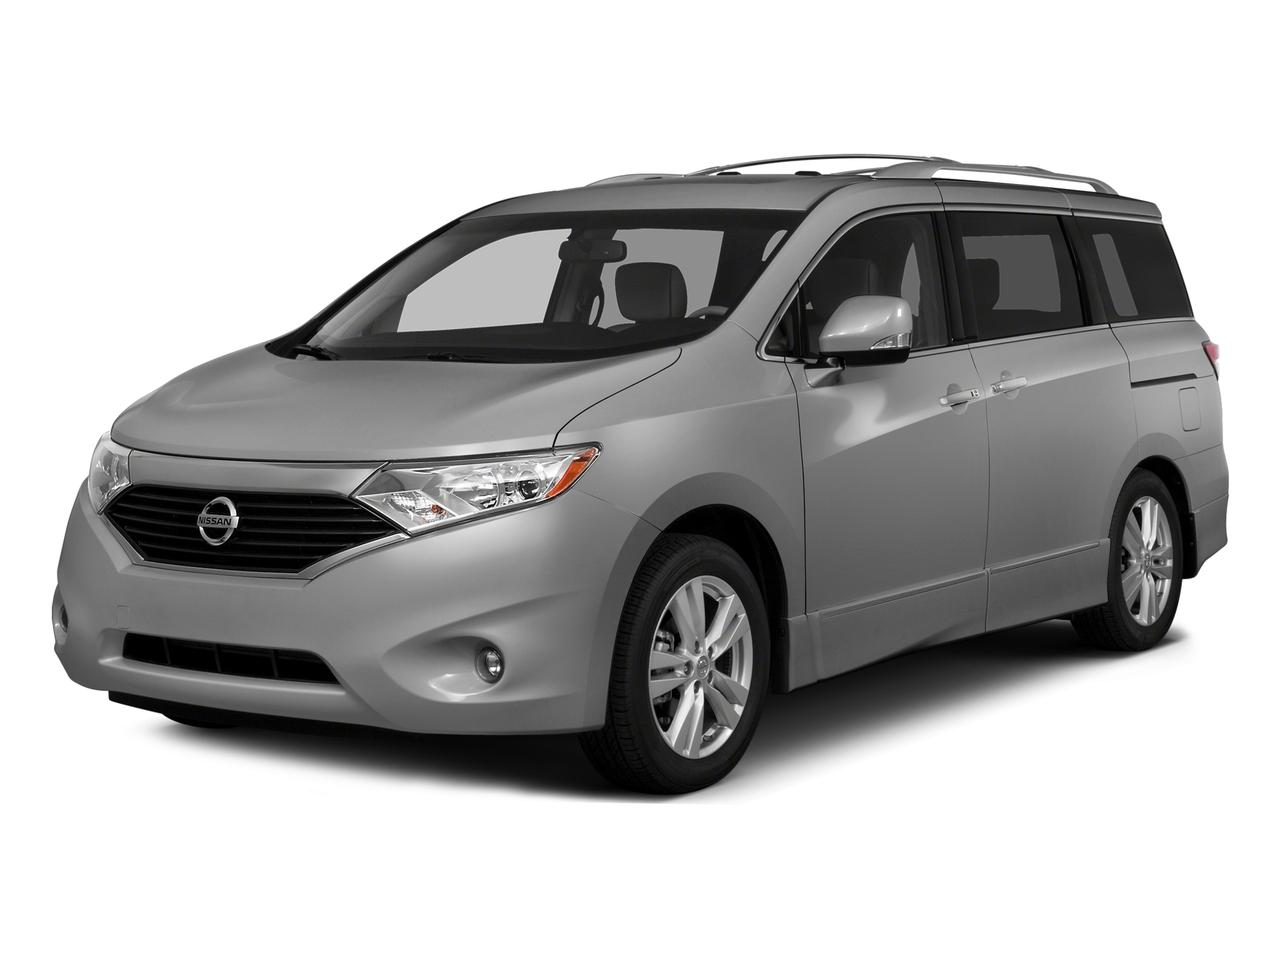 2015 Nissan Quest Vehicle Photo in Vincennes, IN 47591